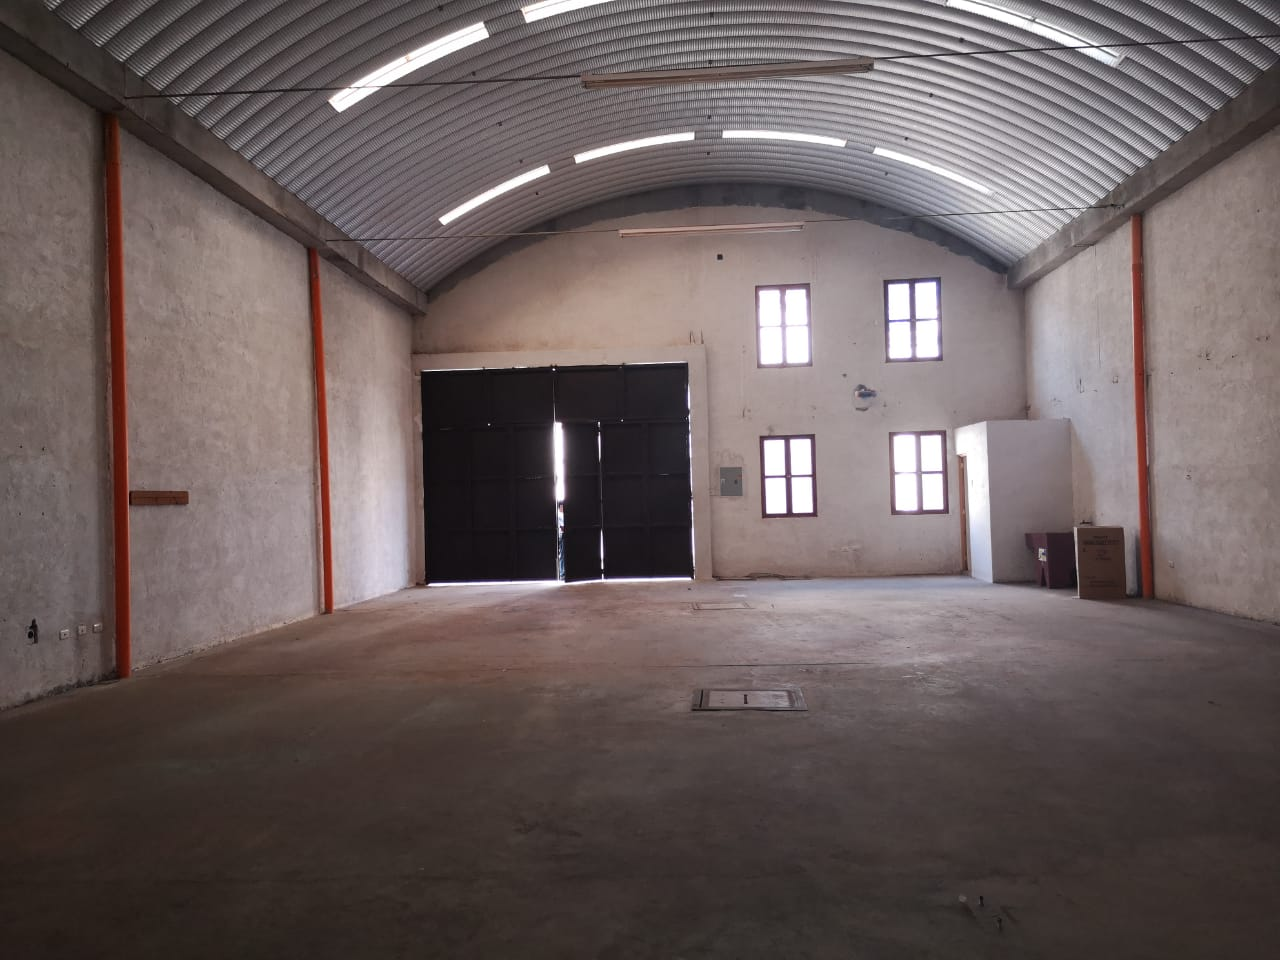 3641 WAREHOUSE FOR RENT CLOSE TO CENTRAL ANTIGUA / FROM 198M2 (Jb)